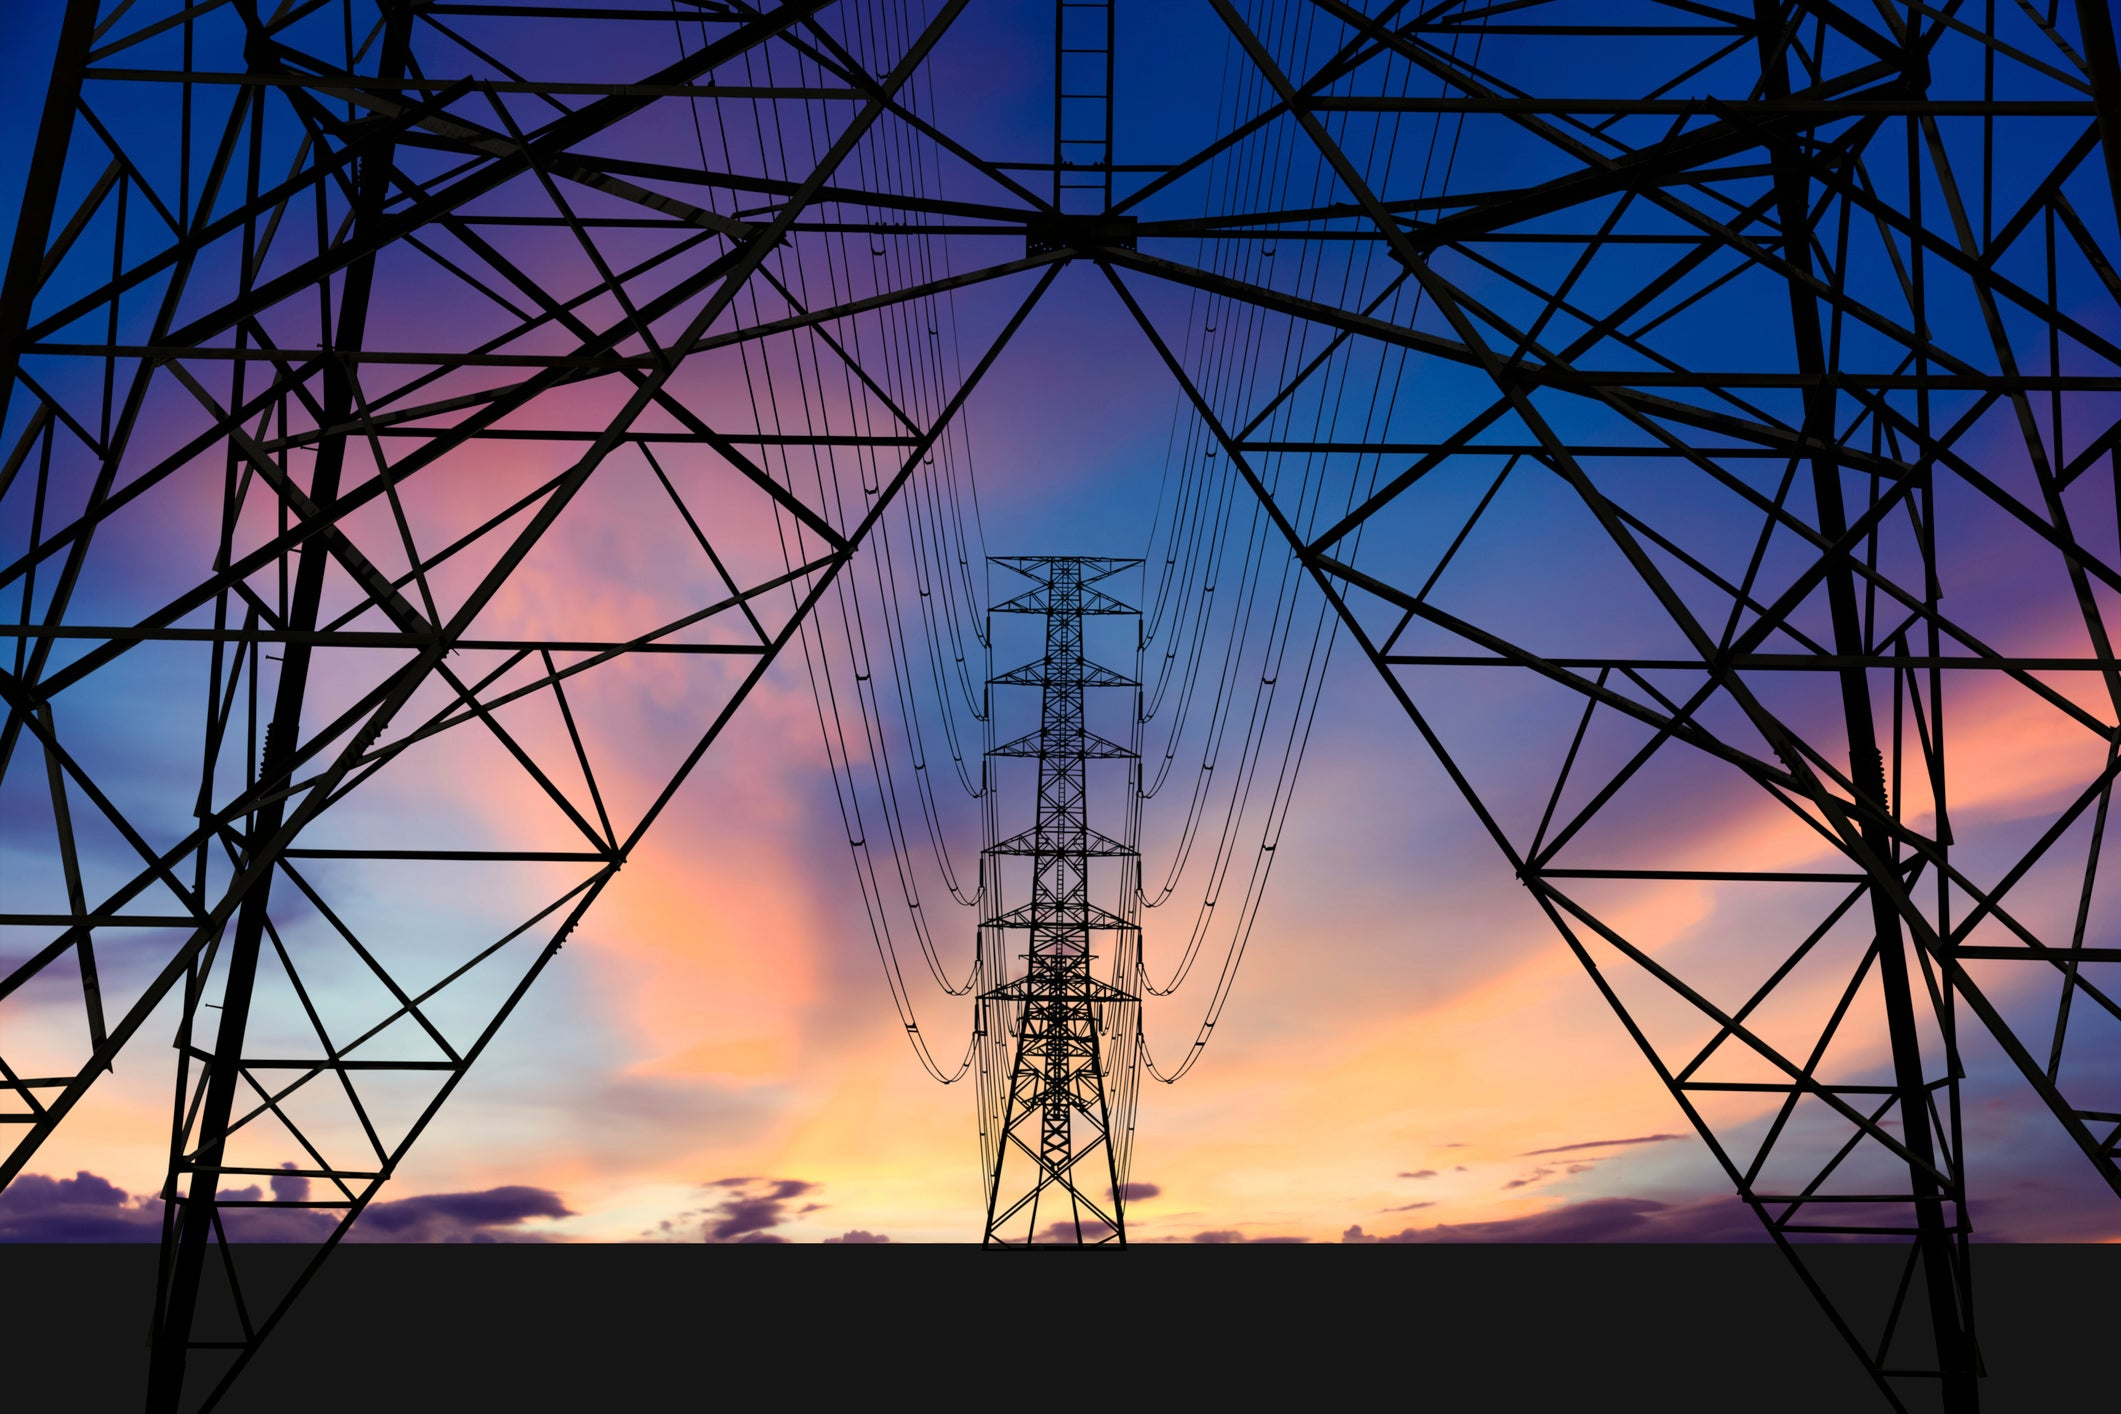 View of a sunset with electrical tower and powerlines on the horizon